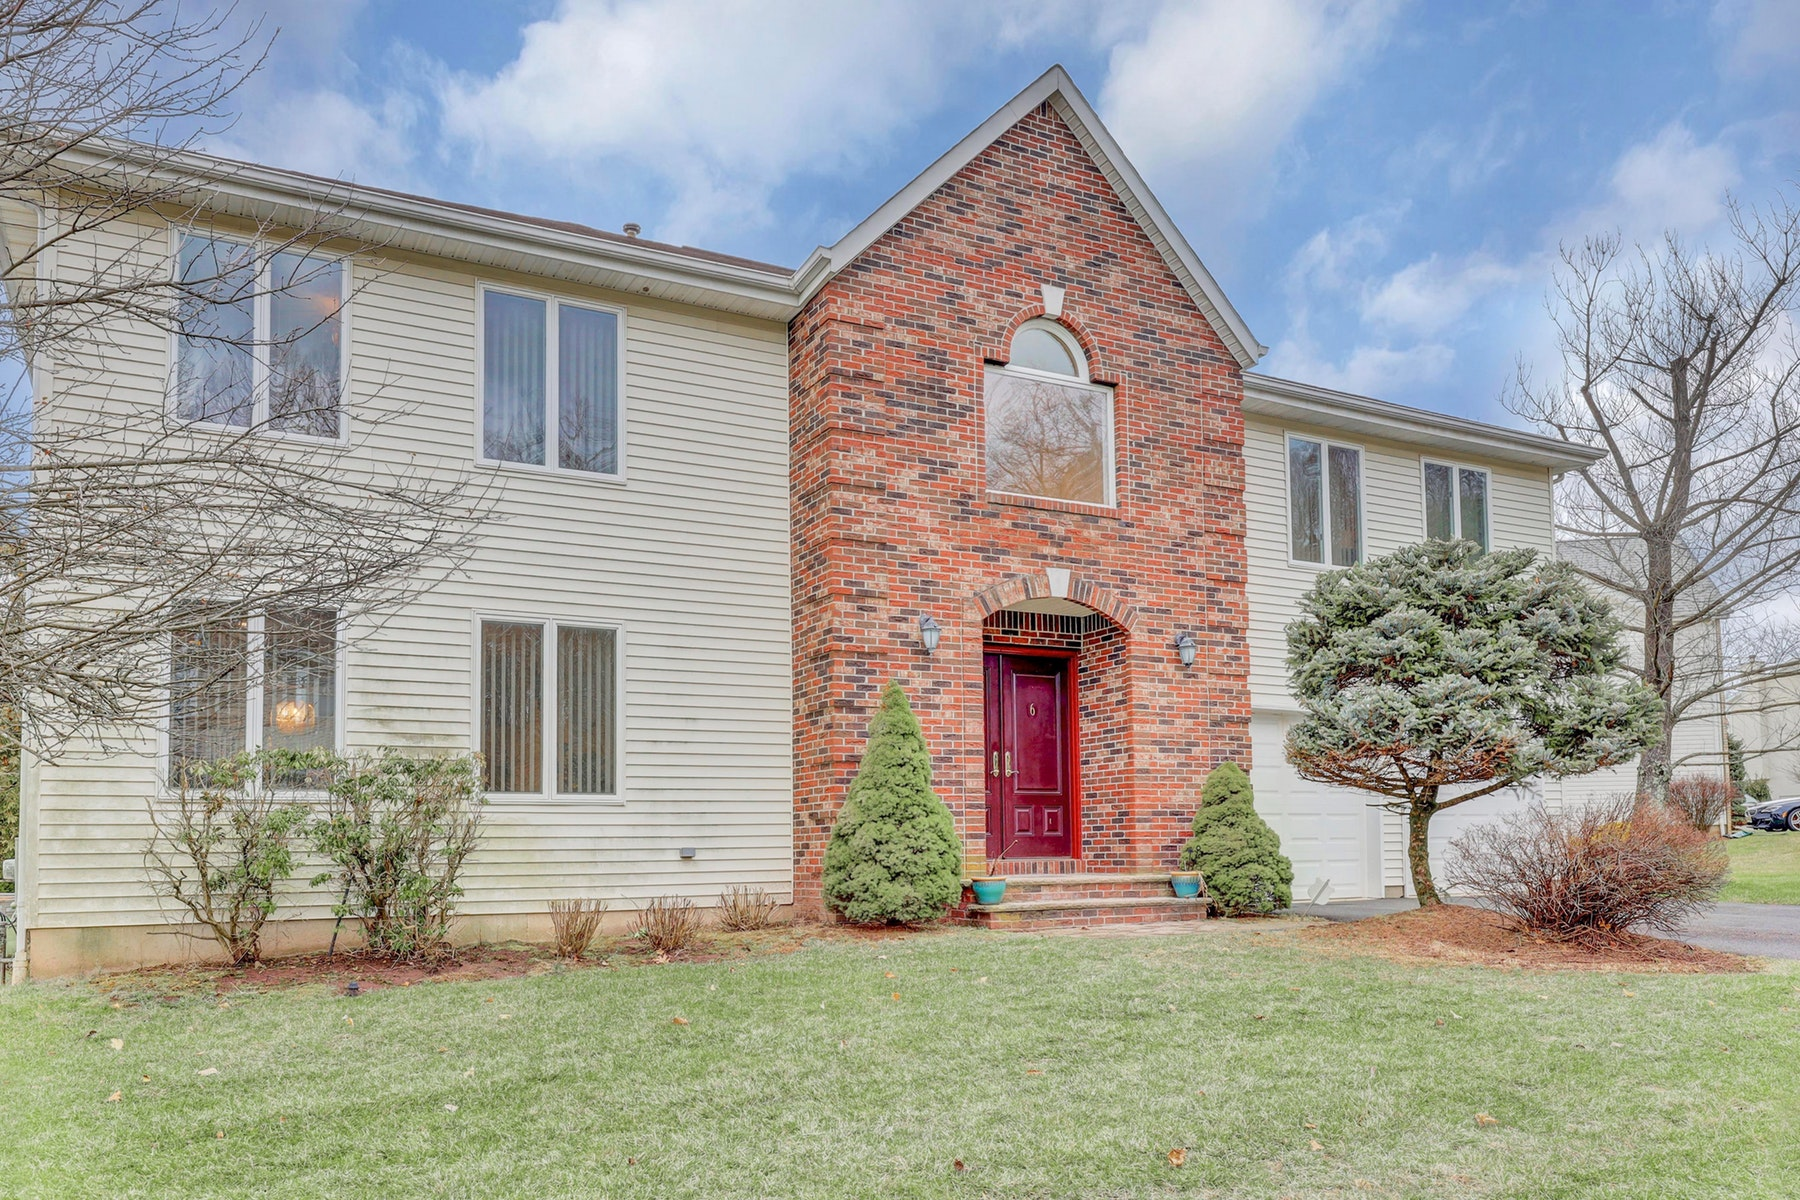 Single Family Homes for Sale at Point View Estates 6 Dudley Court Wayne, New Jersey 07470 United States